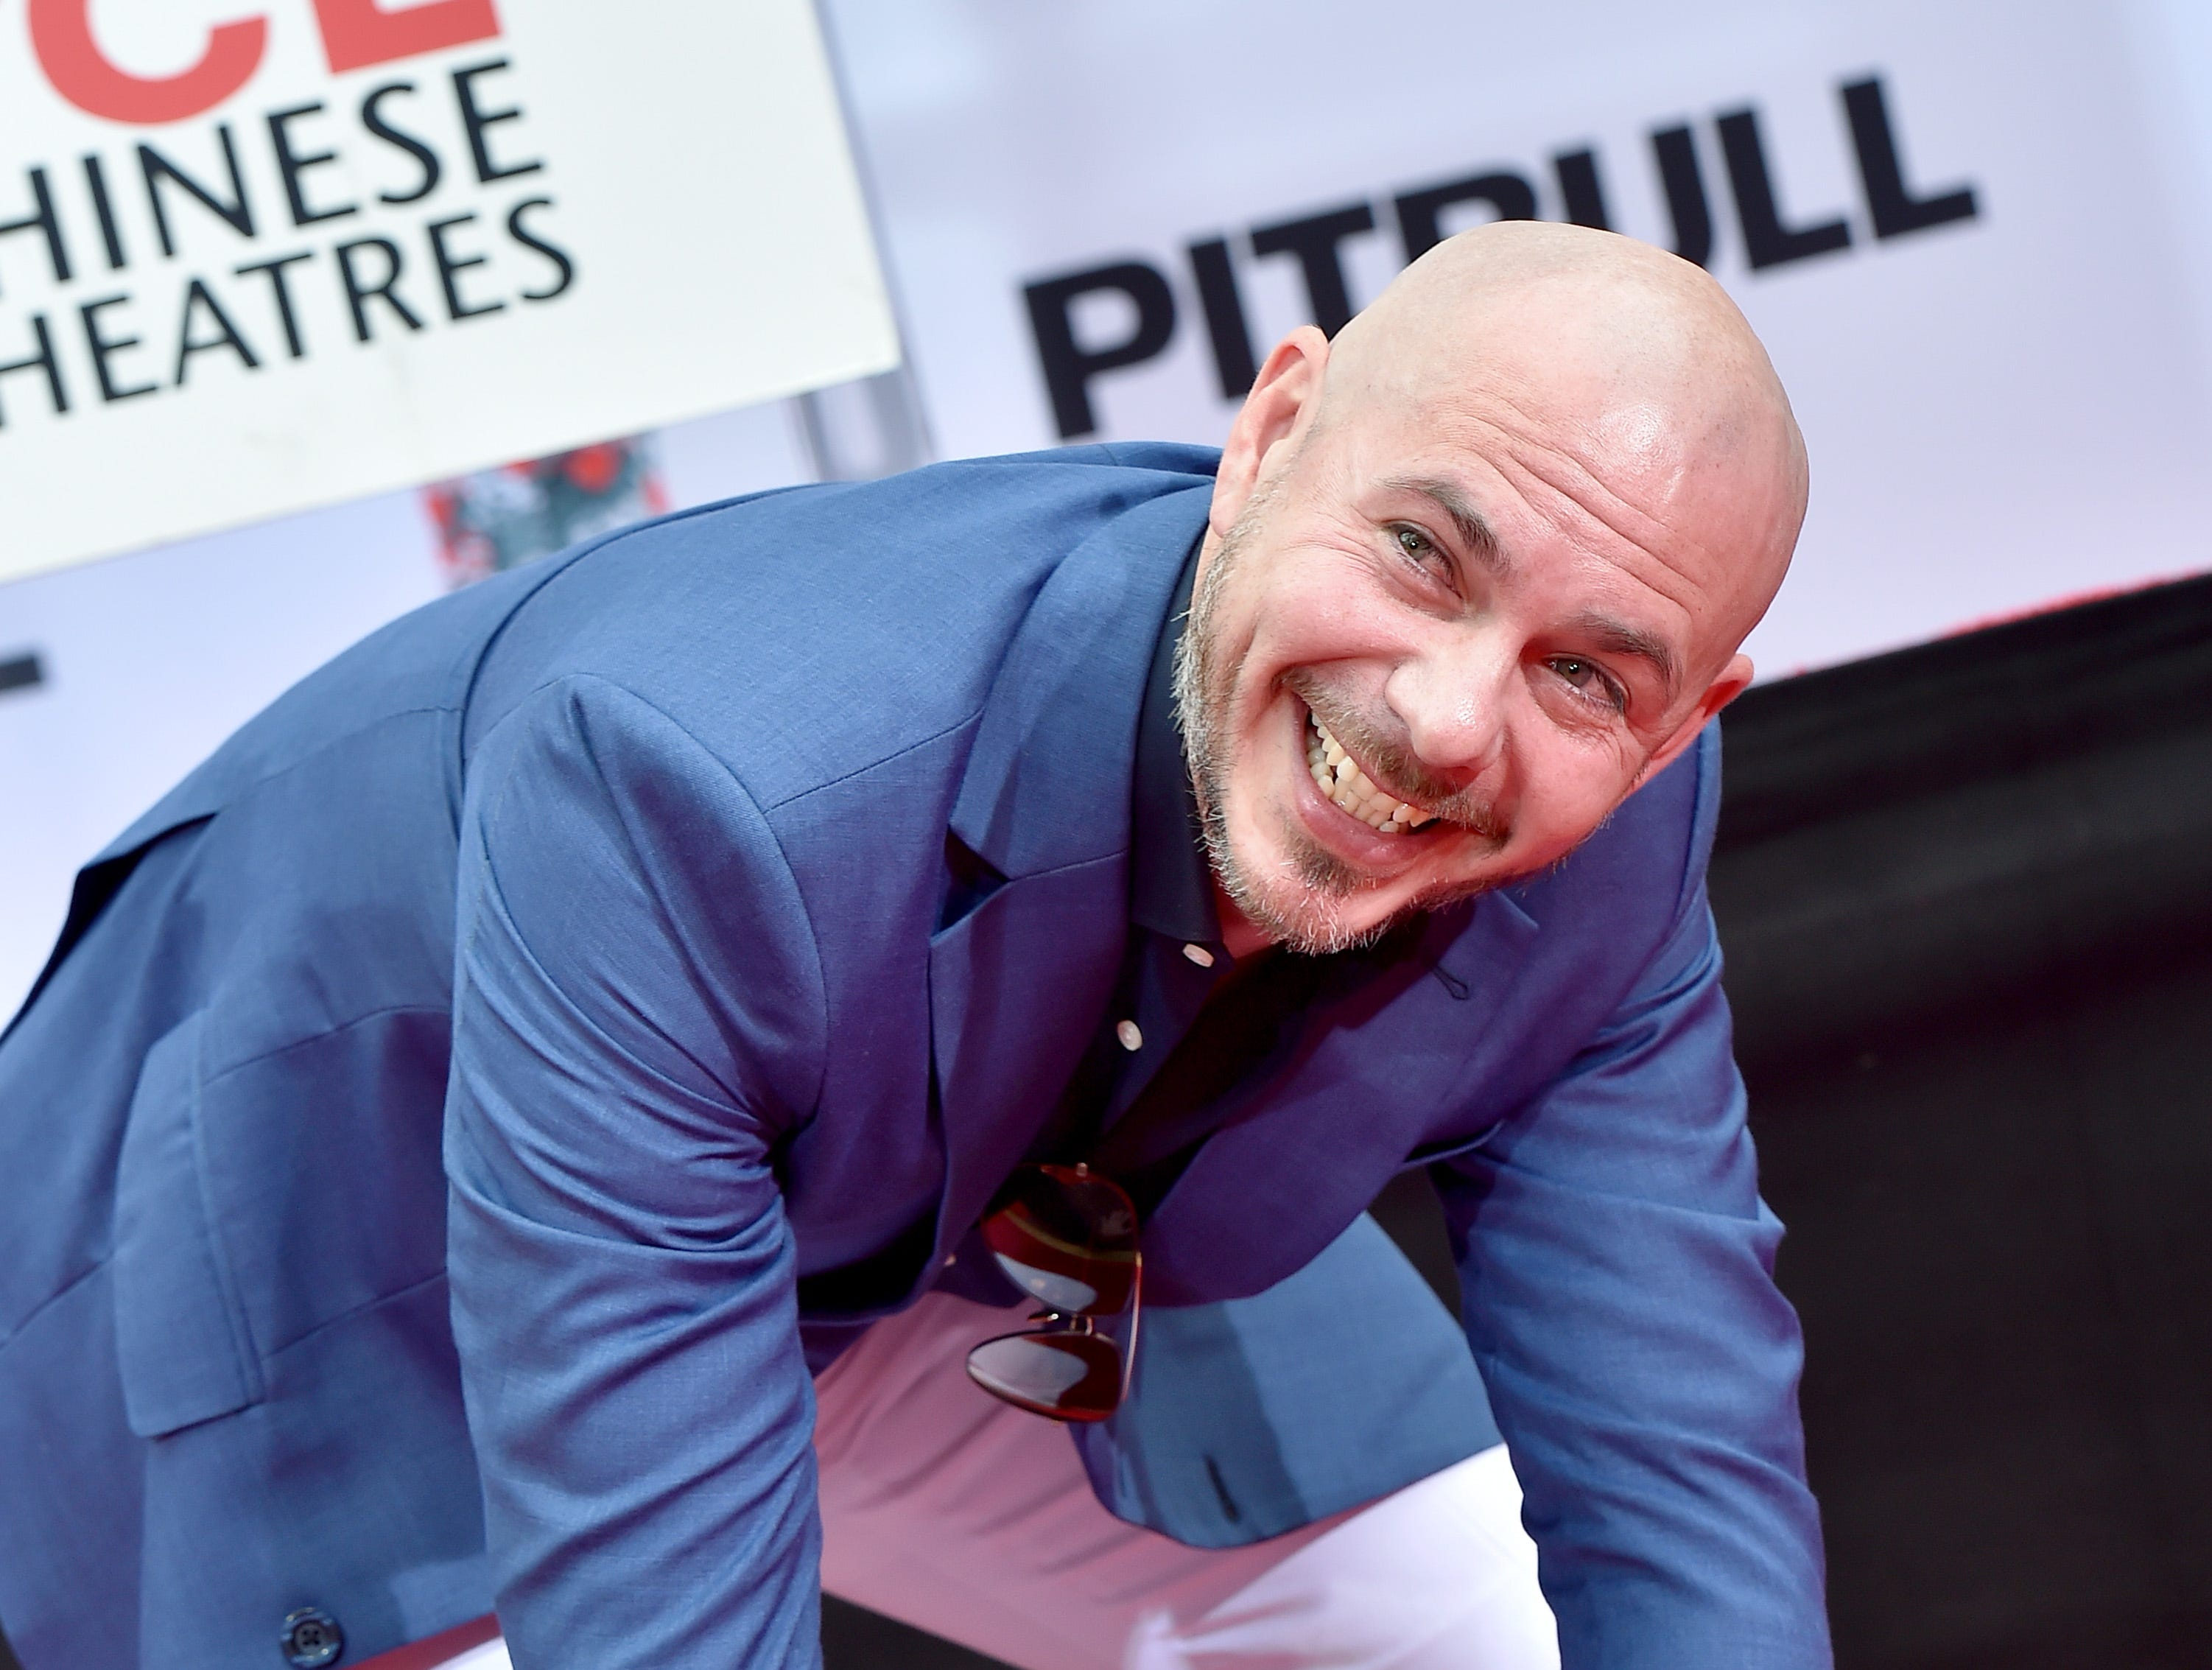 HOLLYWOOD, CA - DECEMBER 14:  Pitbull is honored with Hand and Footprint Ceremony at TCL Chinese Theatre on December 14, 2018 in Hollywood, California.  (Photo by Axelle/Bauer-Griffin/FilmMagic) ORG XMIT: 775269143 ORIG FILE ID: 1073345474